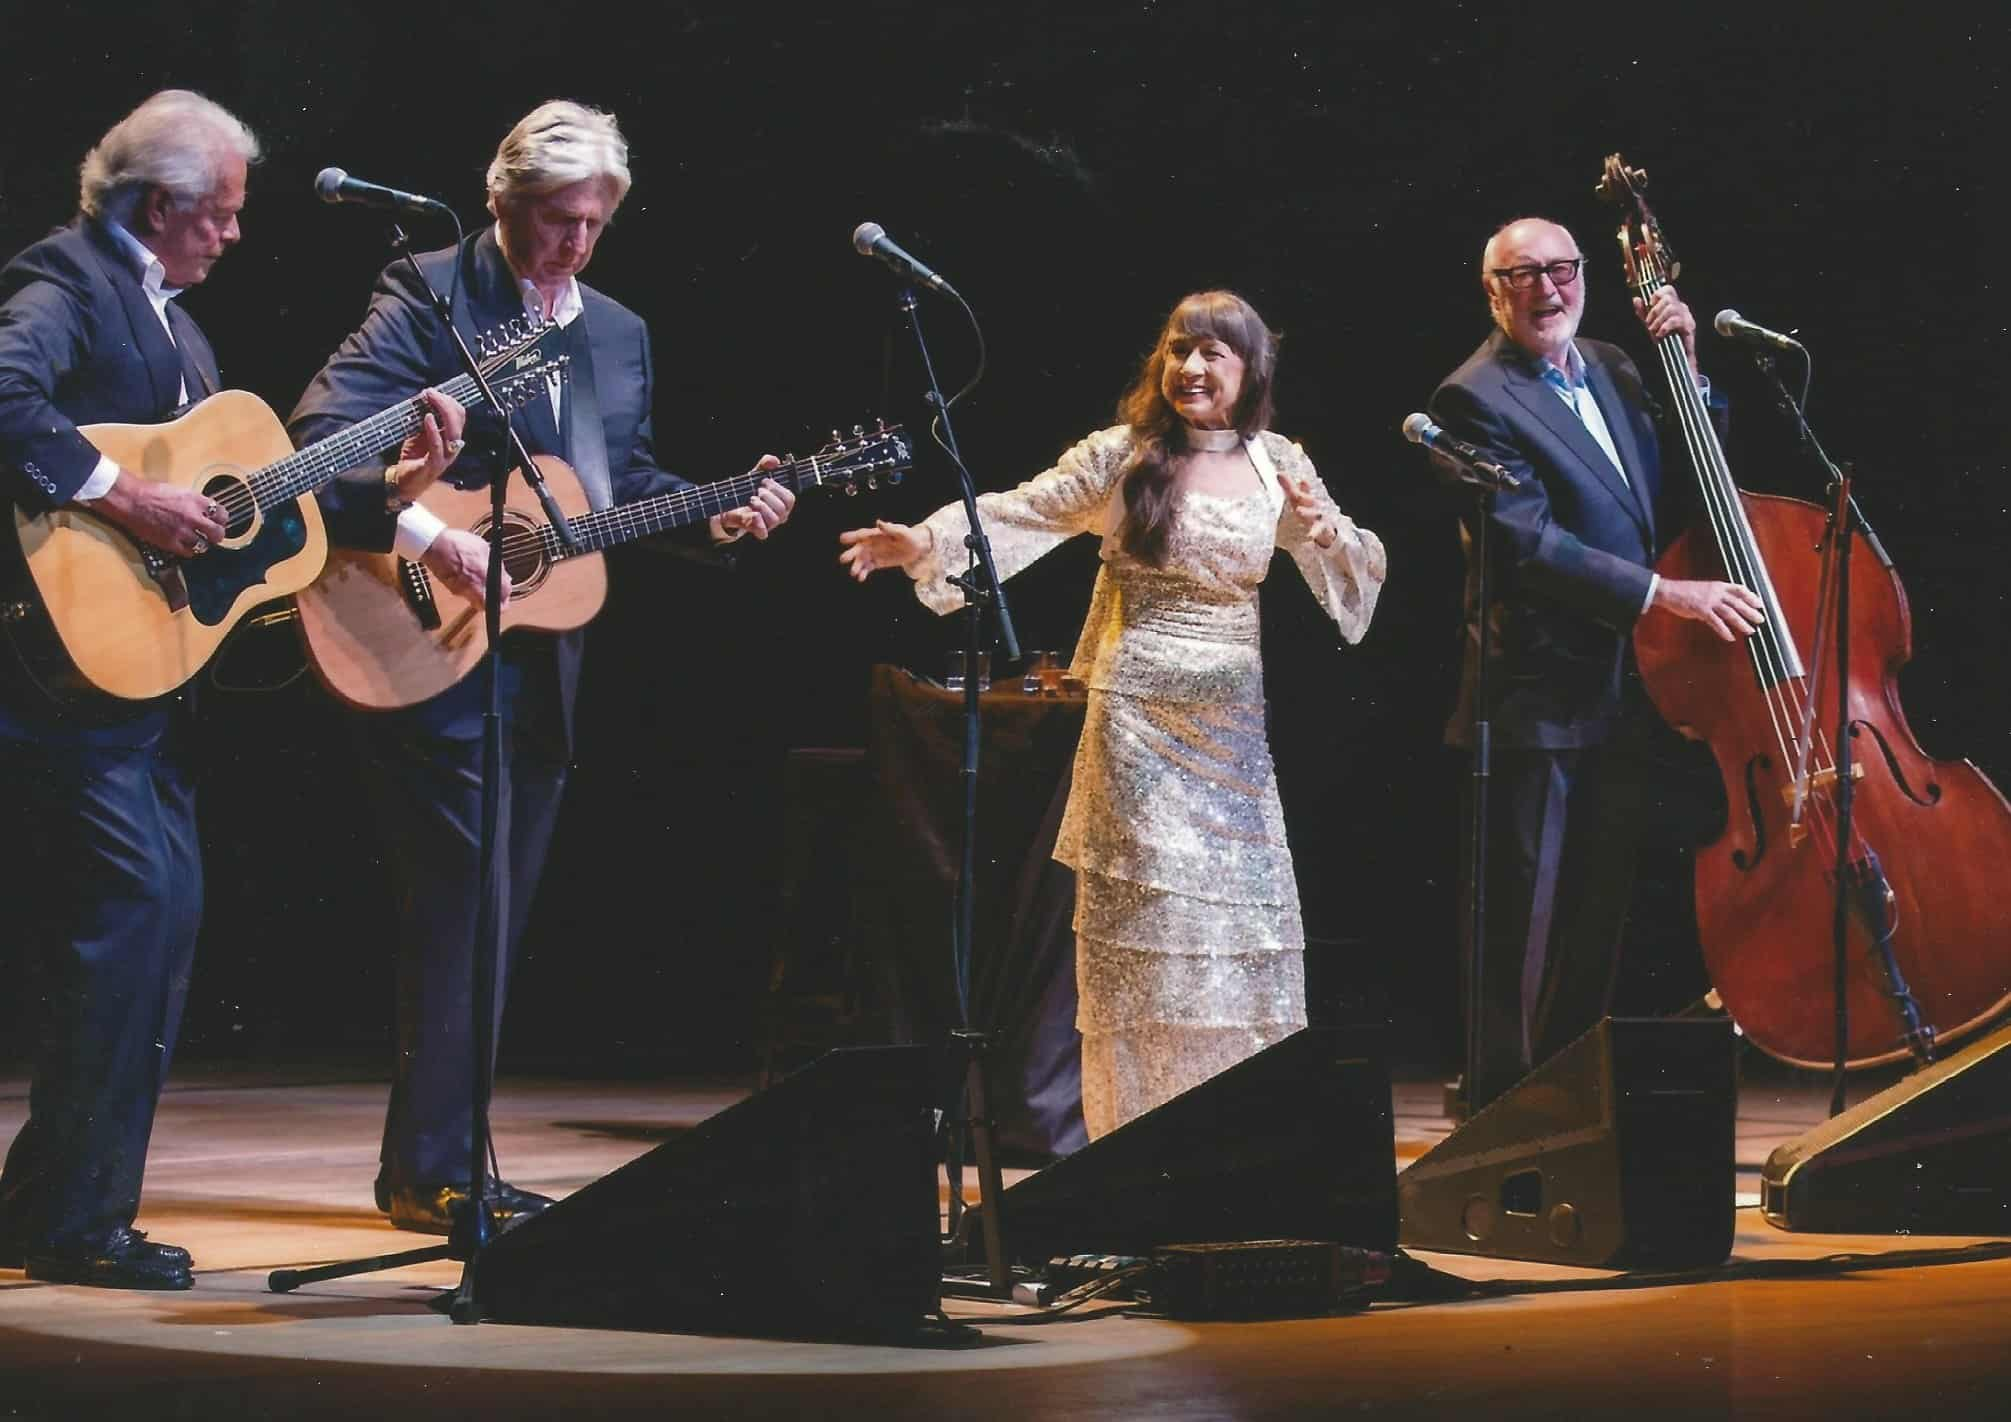 3. The Seekers onstage in the UK in 2014 during their sold-out Golden Jubilee tour.